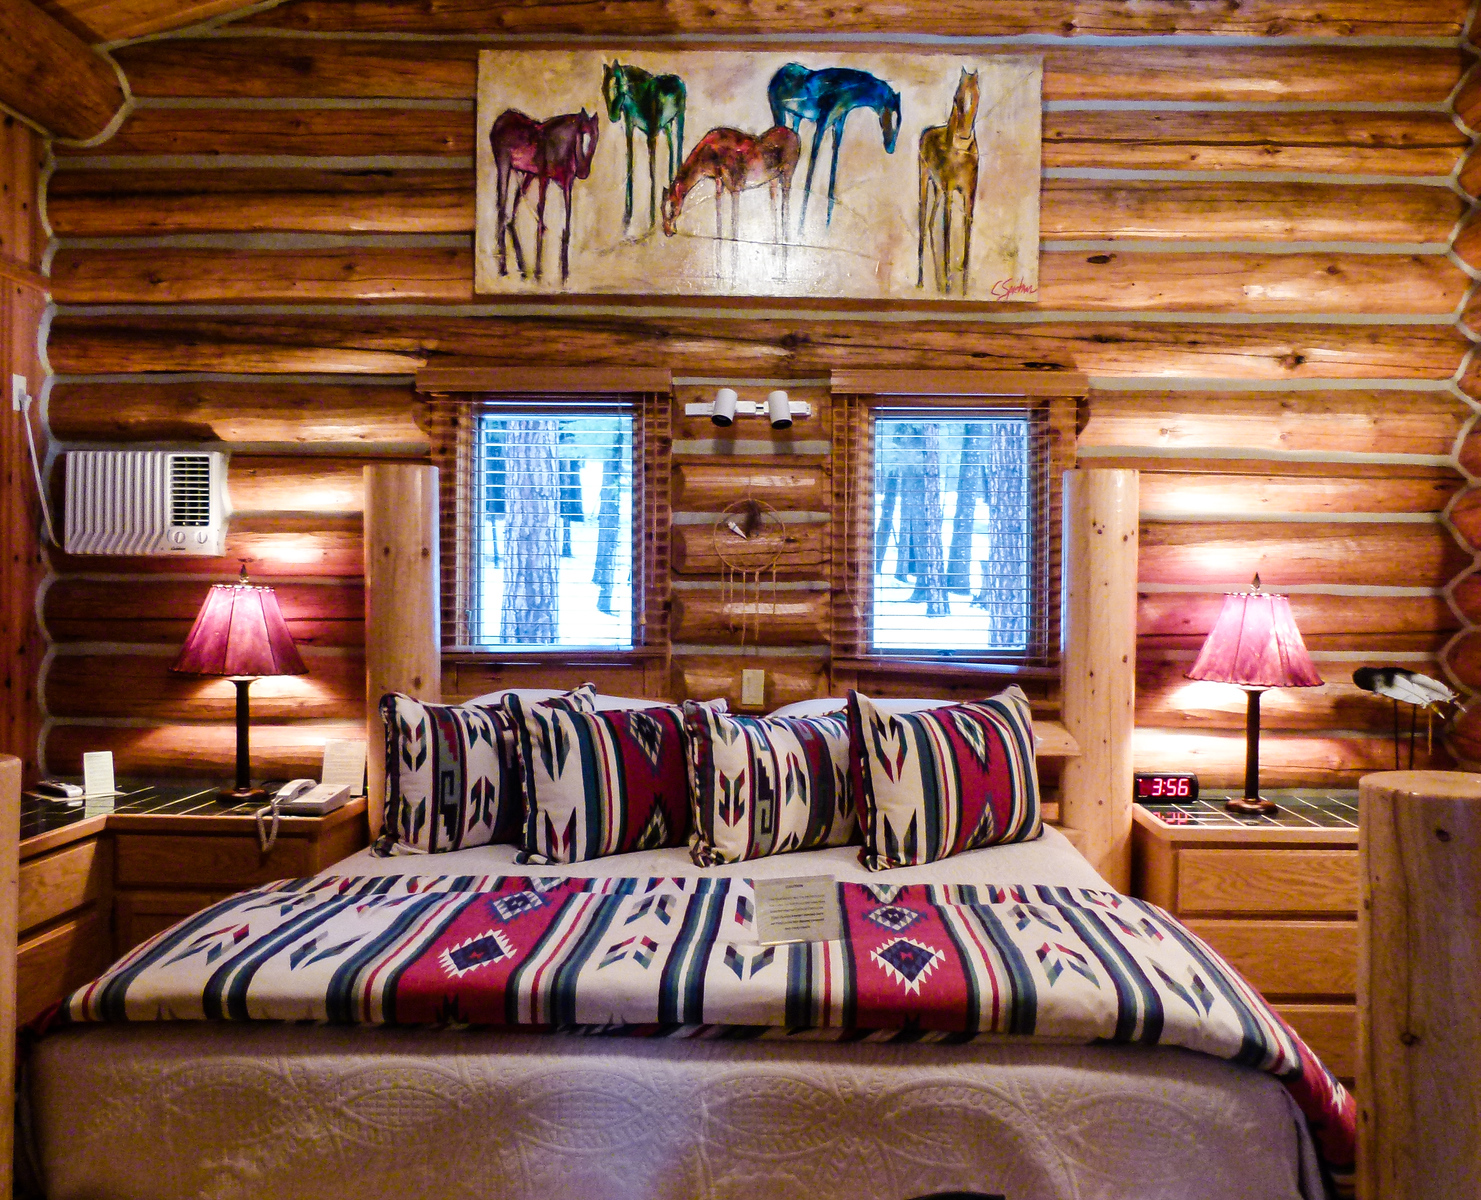 Bedroom interior in a Triple Creek Ranch log cabin.